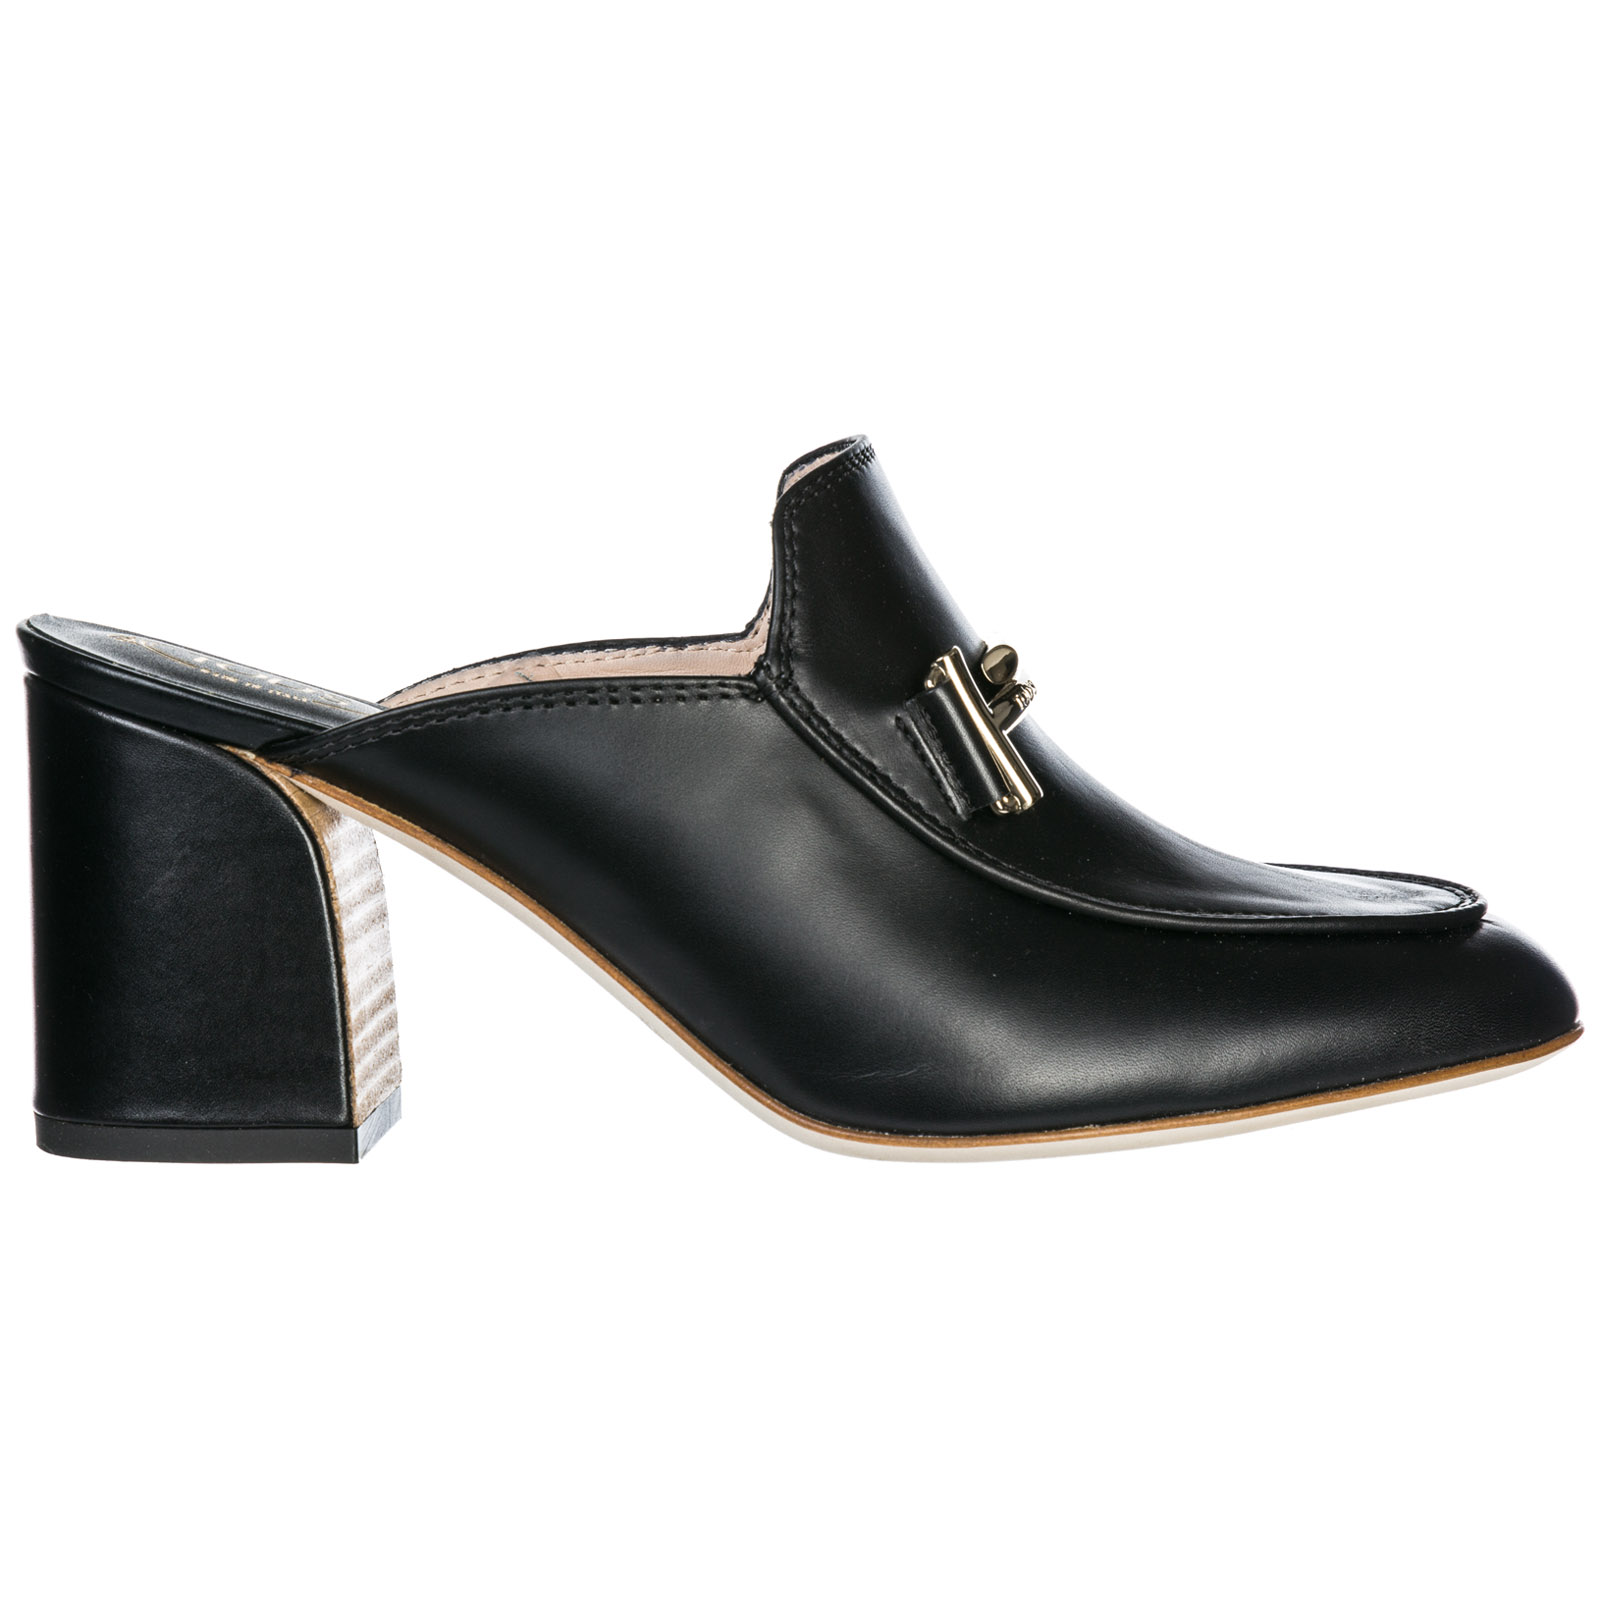 Tod's Women's Leather Mules Clogs Double T In Black